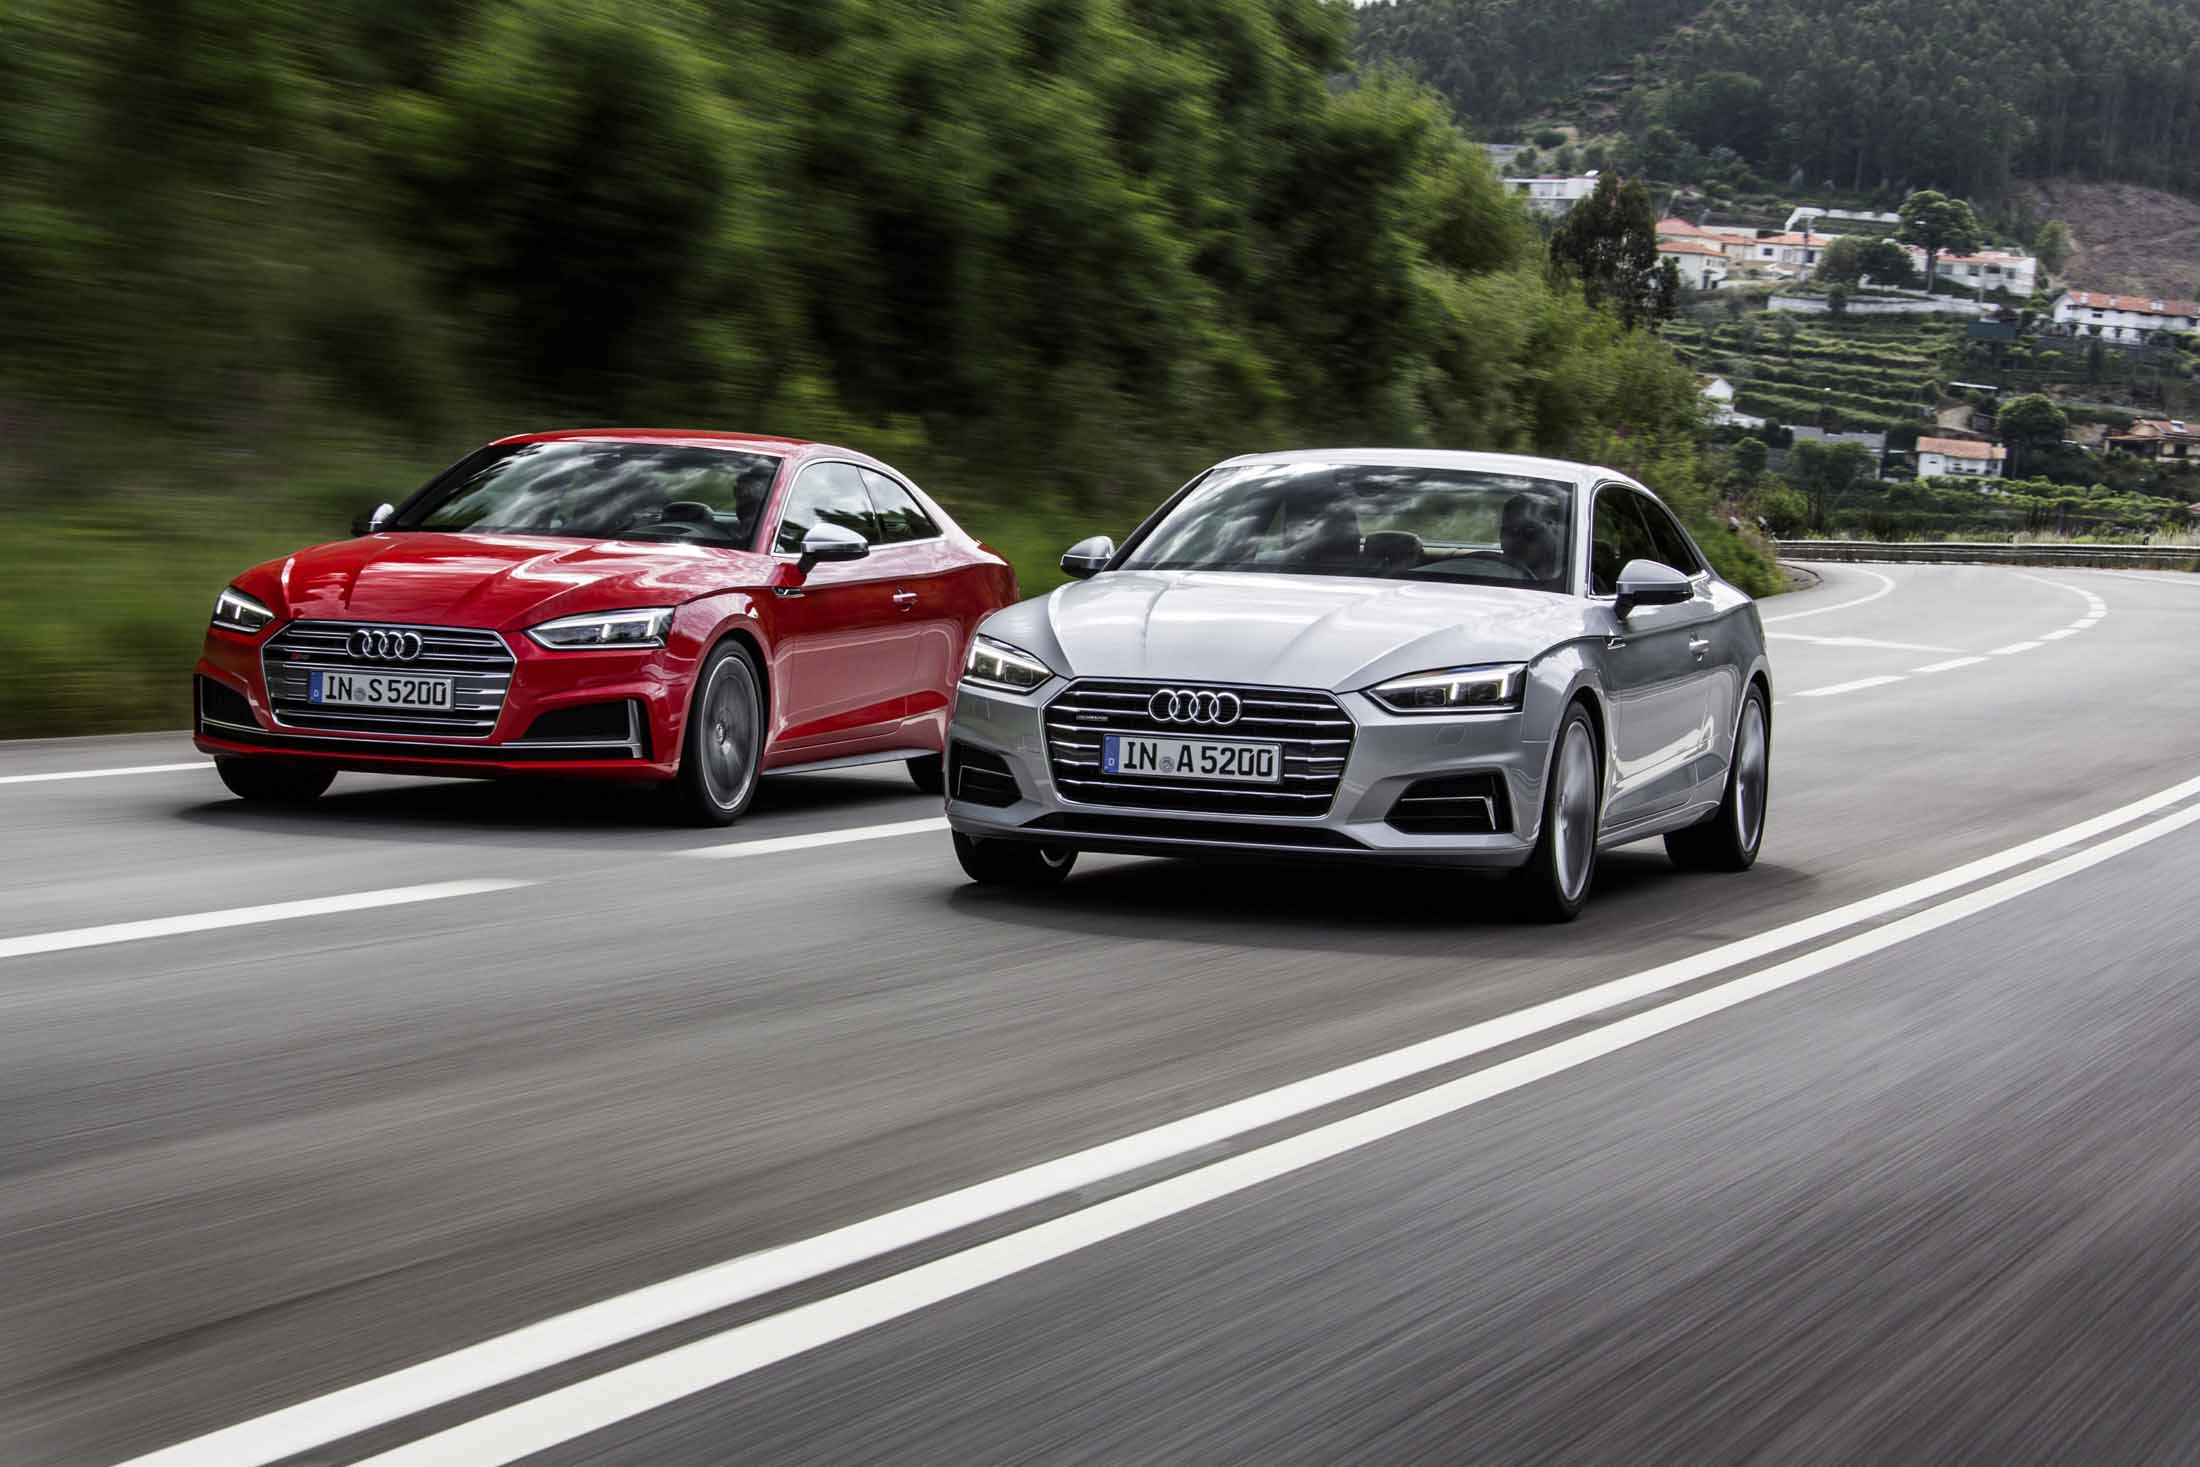 2018 Audi A5 and S5 first drive review Sibling rivalry renewed